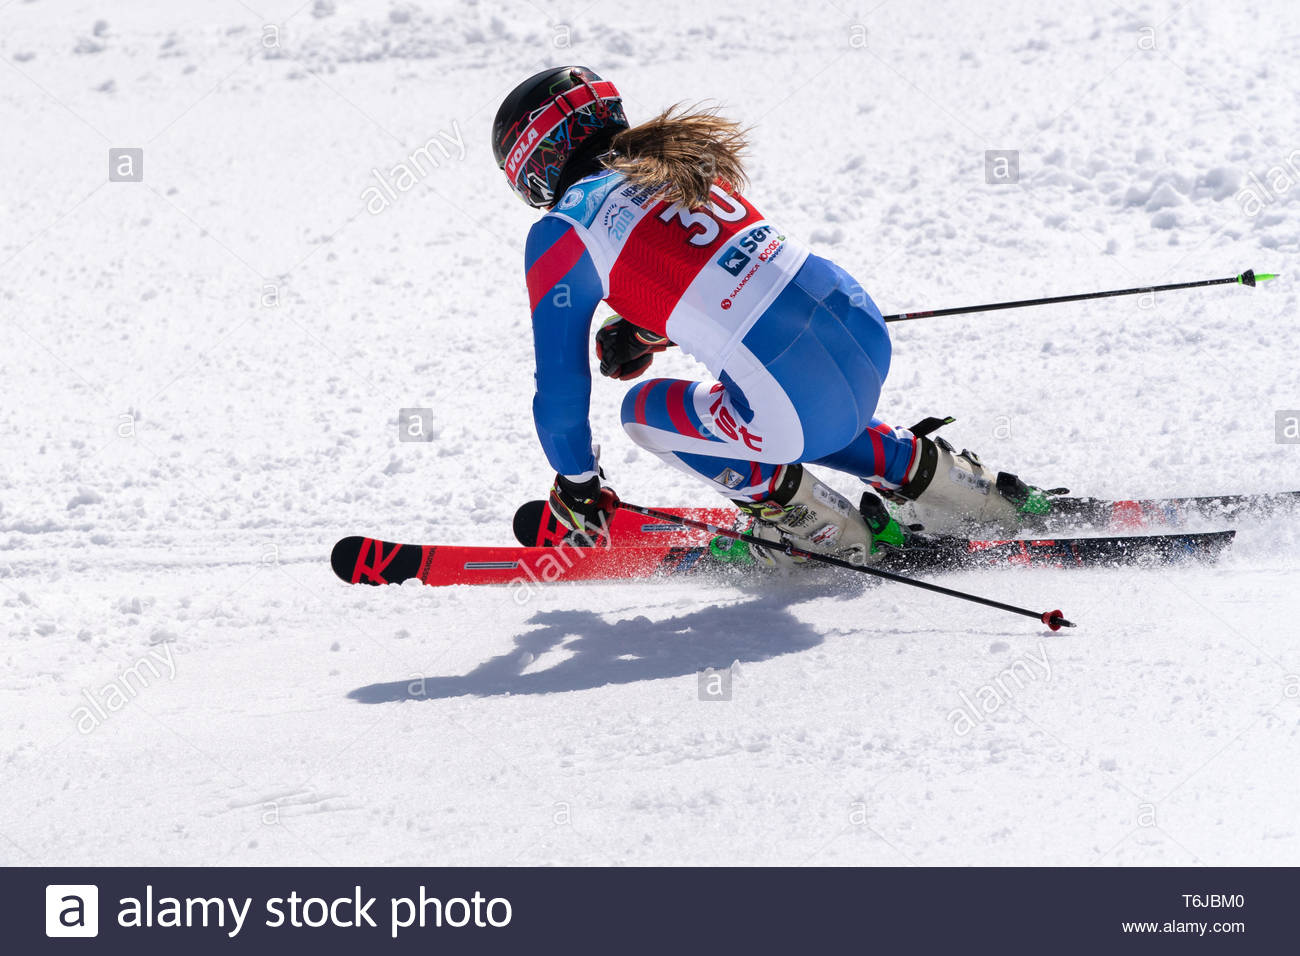 KAMCHATKA PENINSULA, RUSSIAN FEDERATION - APRIL 1, 2019: Mountain skier Lendya Ulyana (Kamchatka Territory) skiing down snowy mountain slope. Russian  - Stock Image